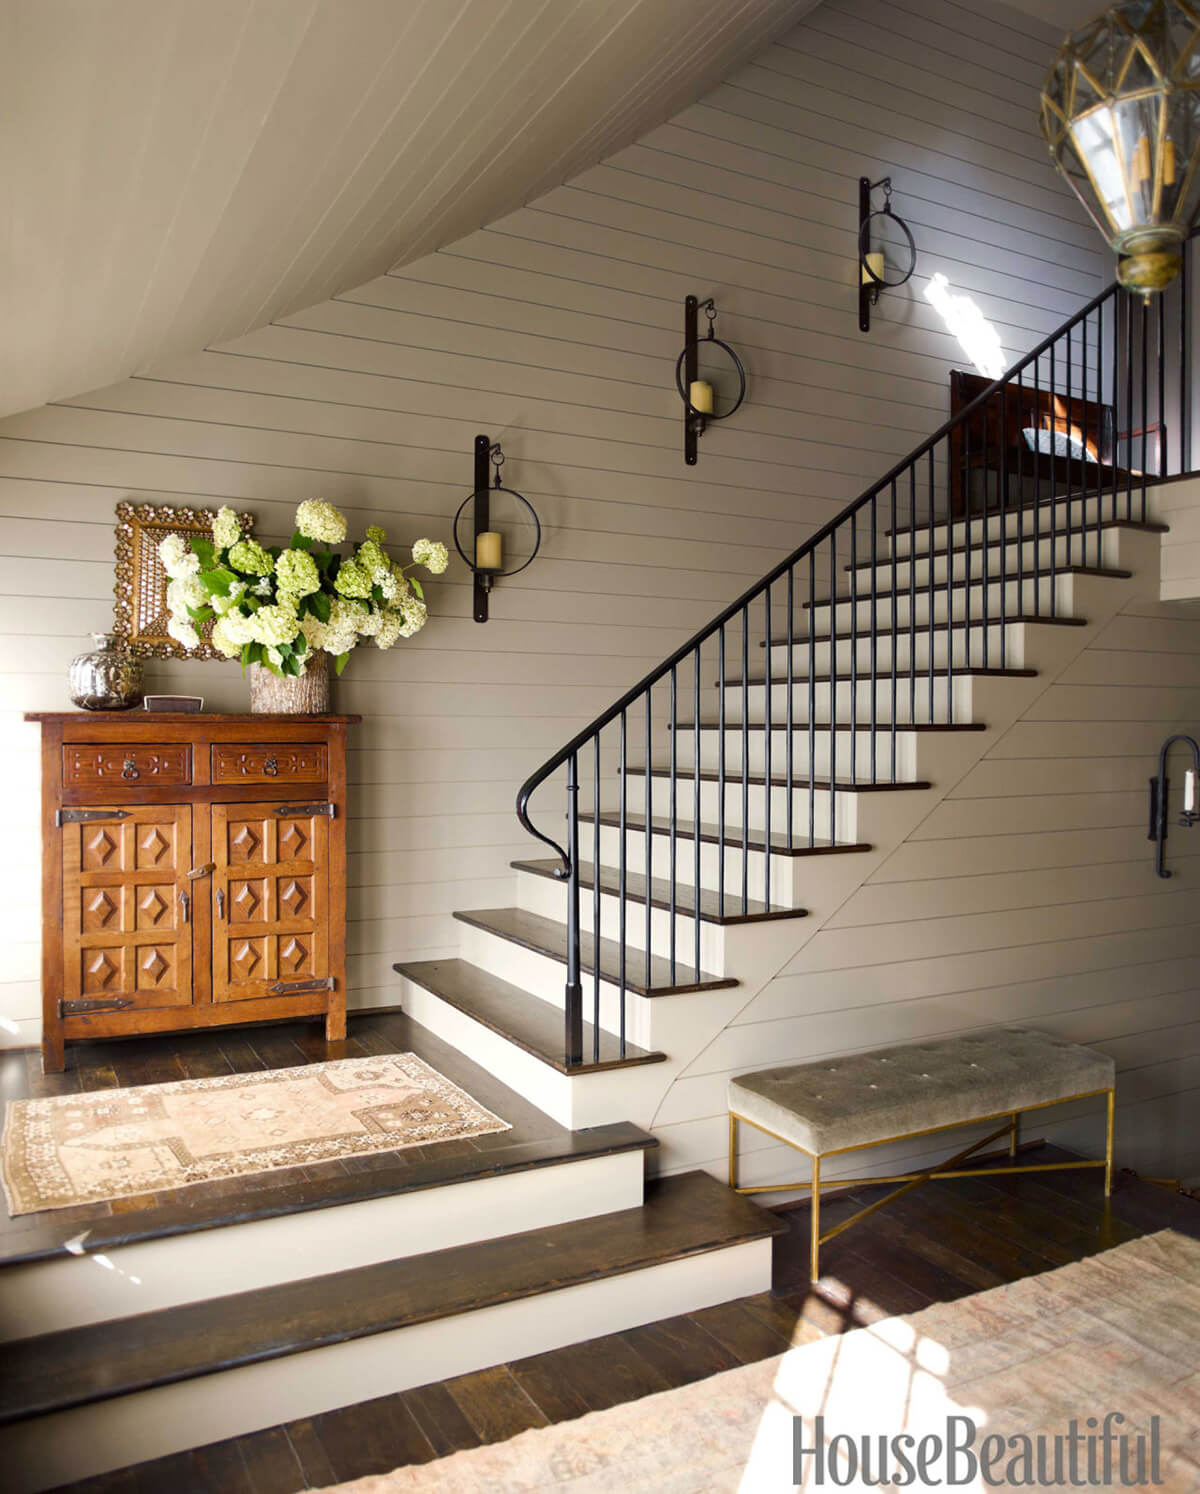 decorate stairs ideas stairway decorating idea with sconces XZMEWIQ